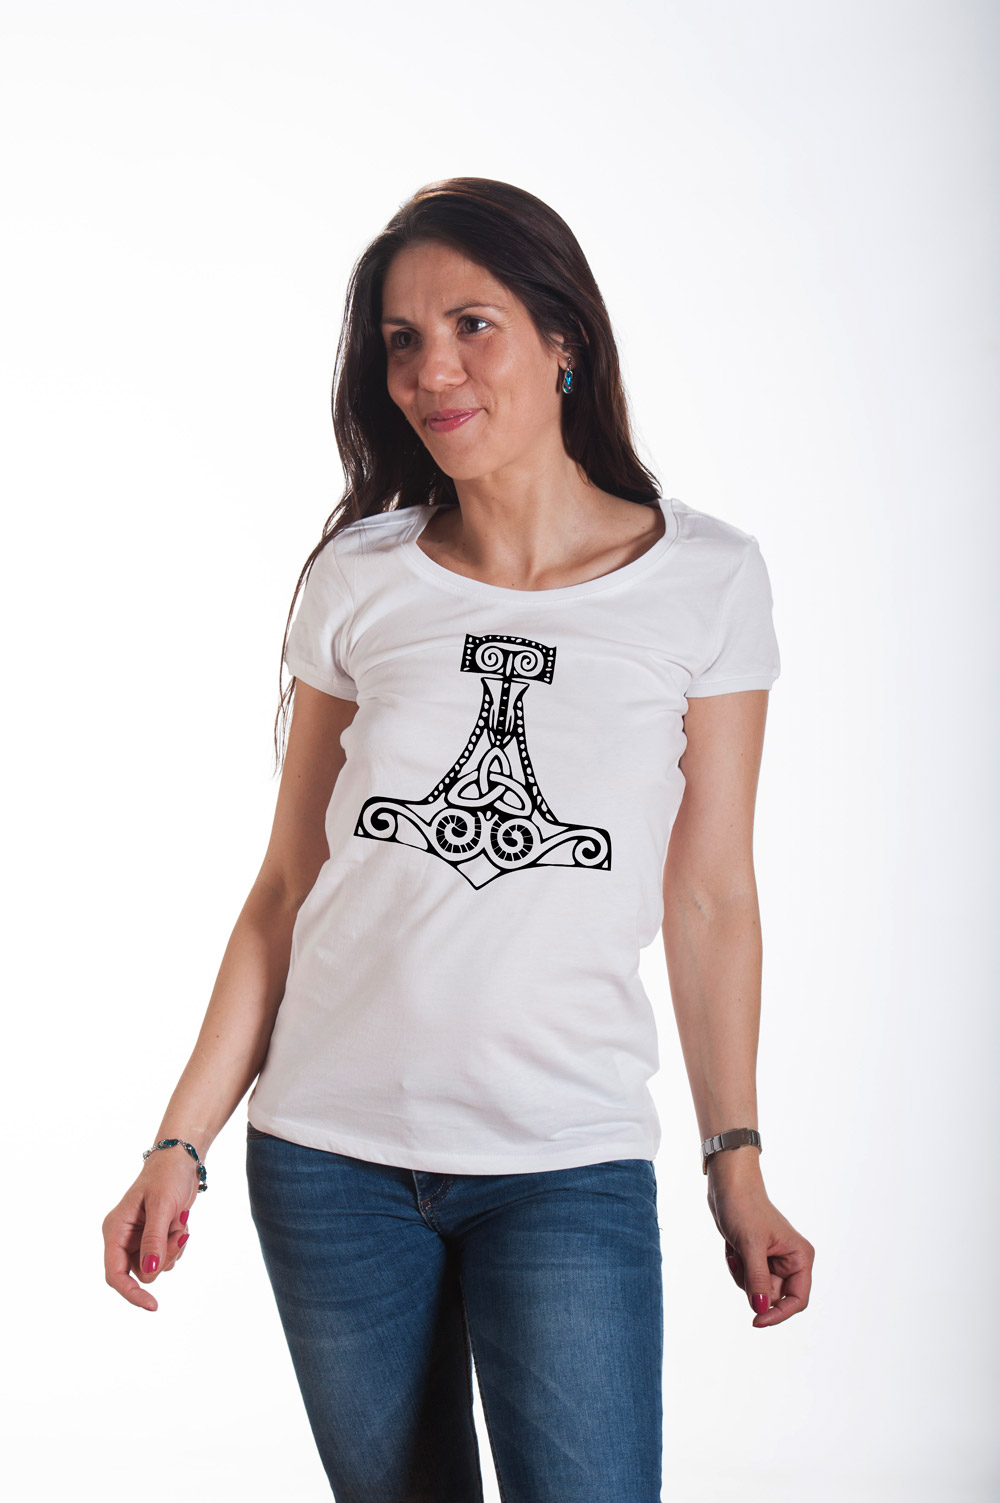 Hammer of Thor 2 T shirt | Norse Mythology Tee | Runes Tshirt | Norse Shirt